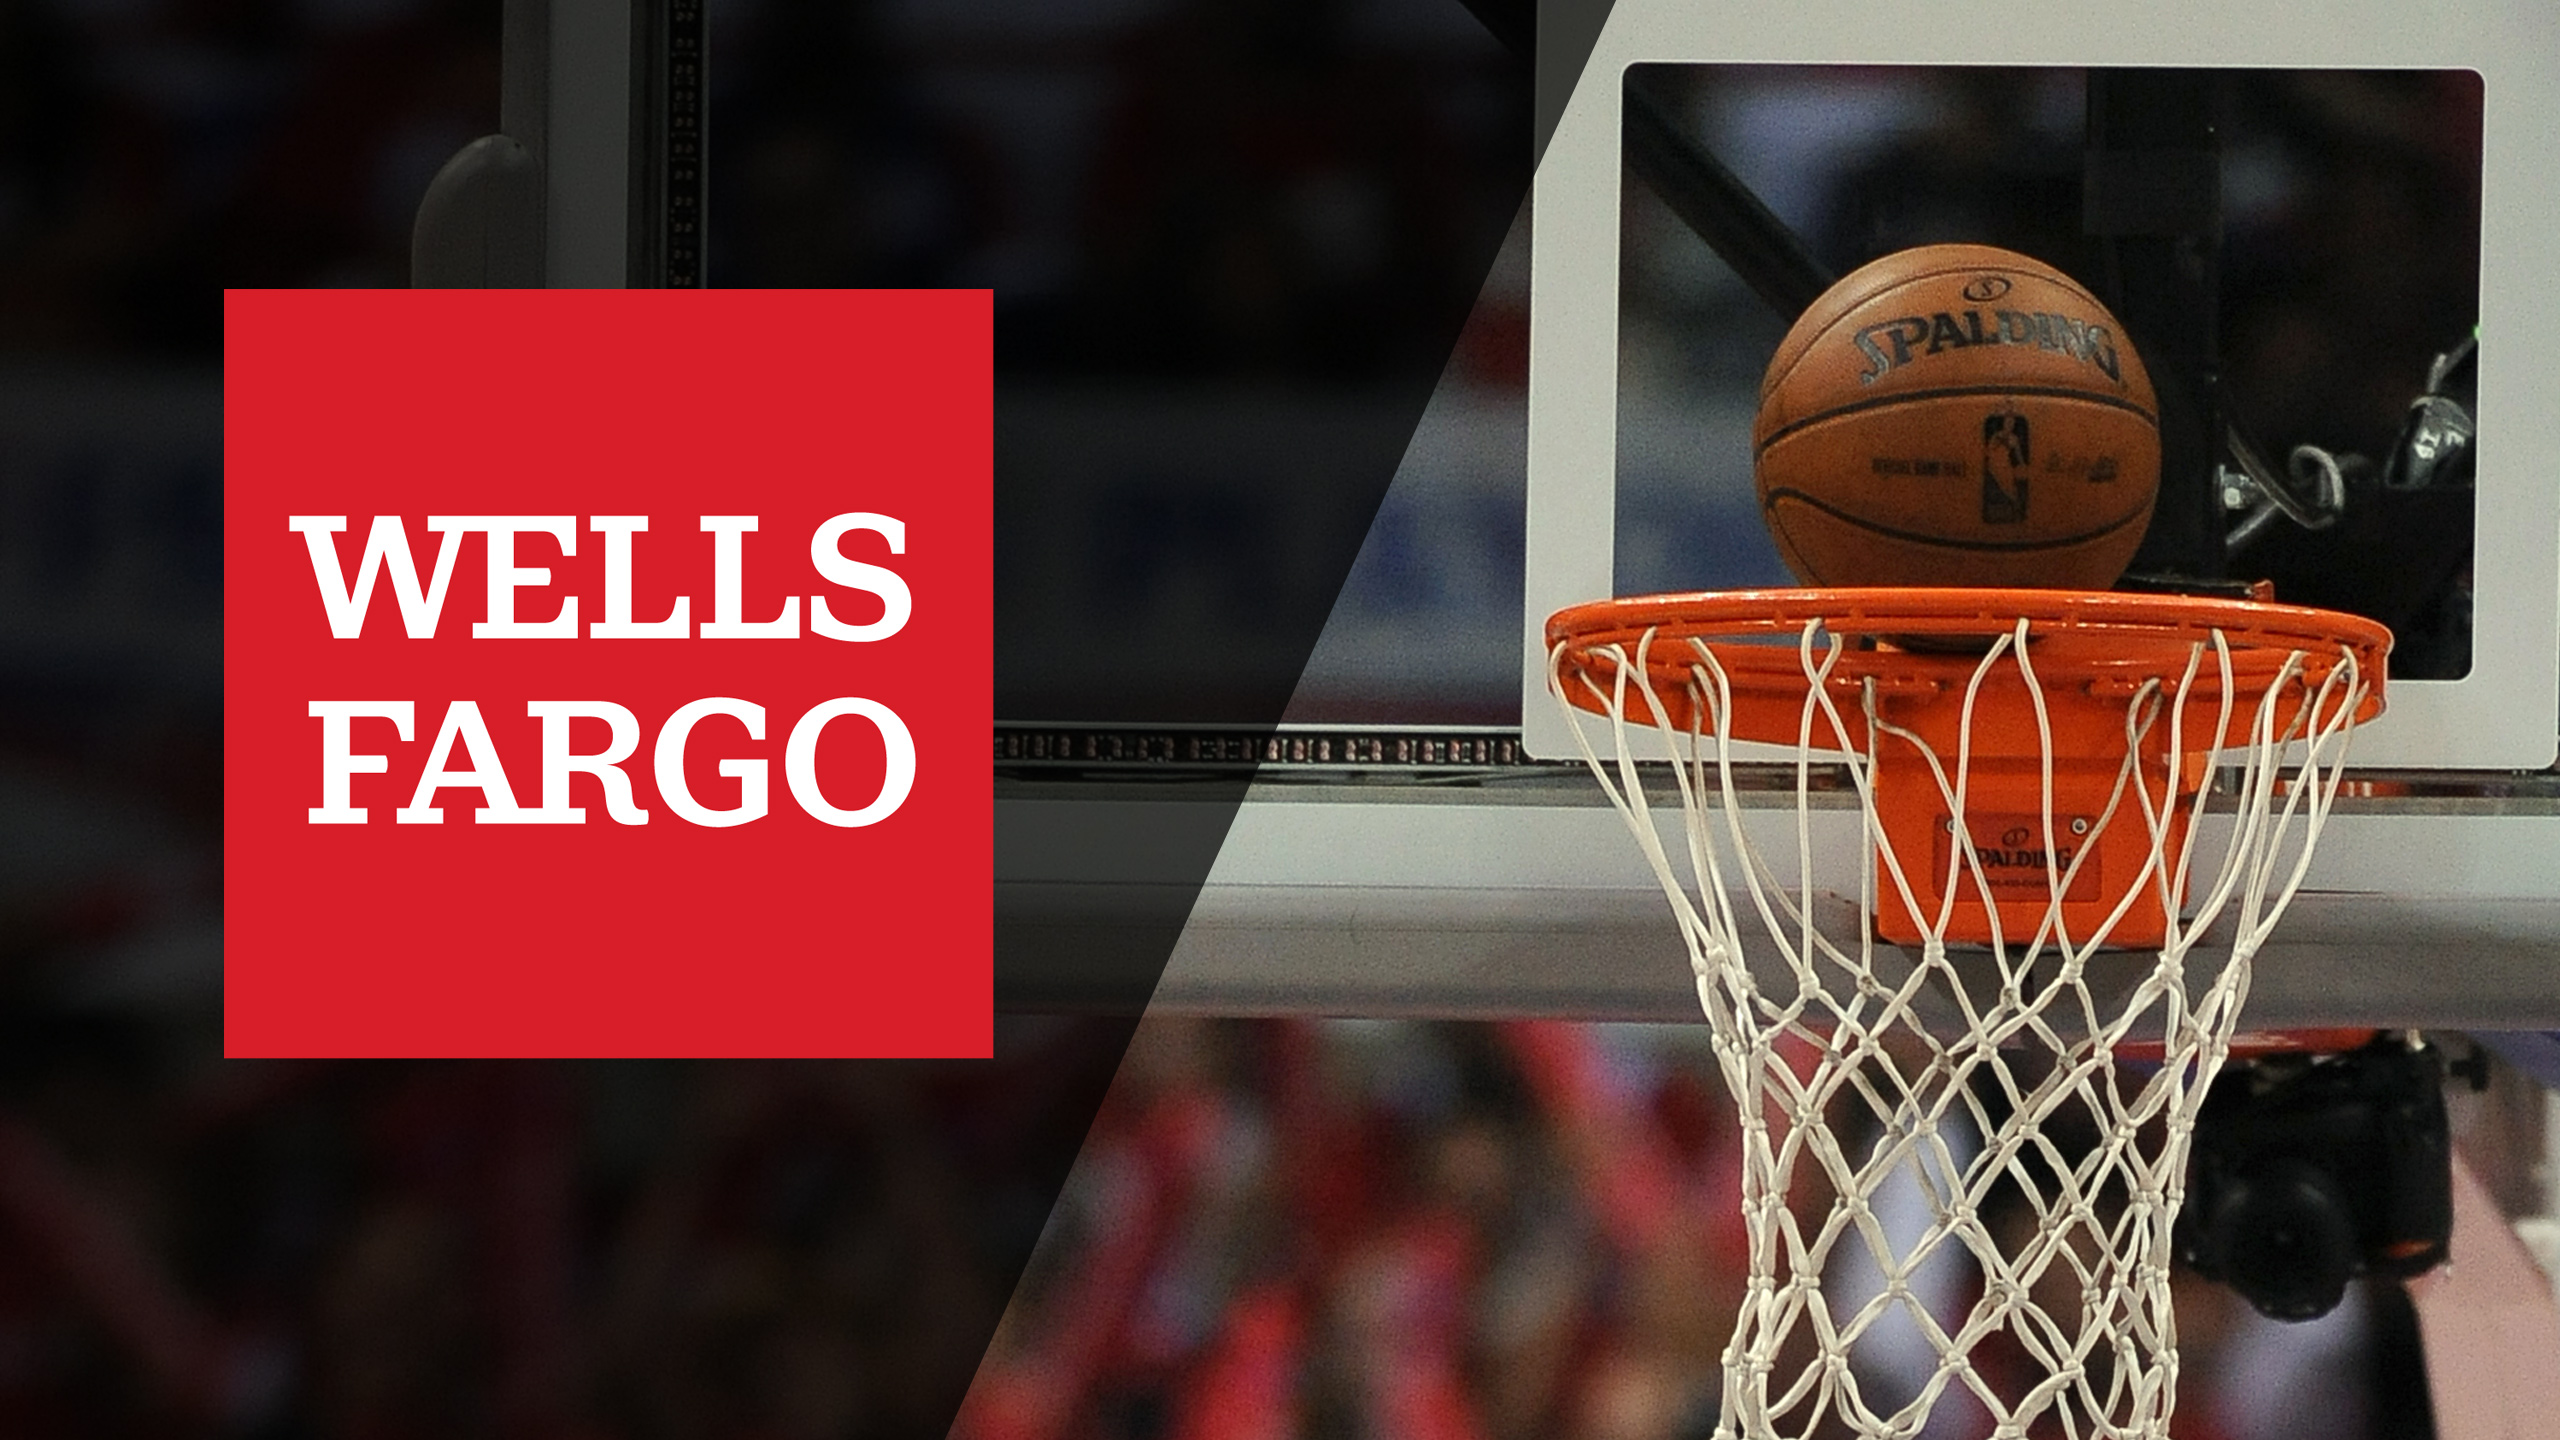 Wells Fargo Above the Rim - Houston Rockets vs. Utah Jazz (First Round, Game 3)